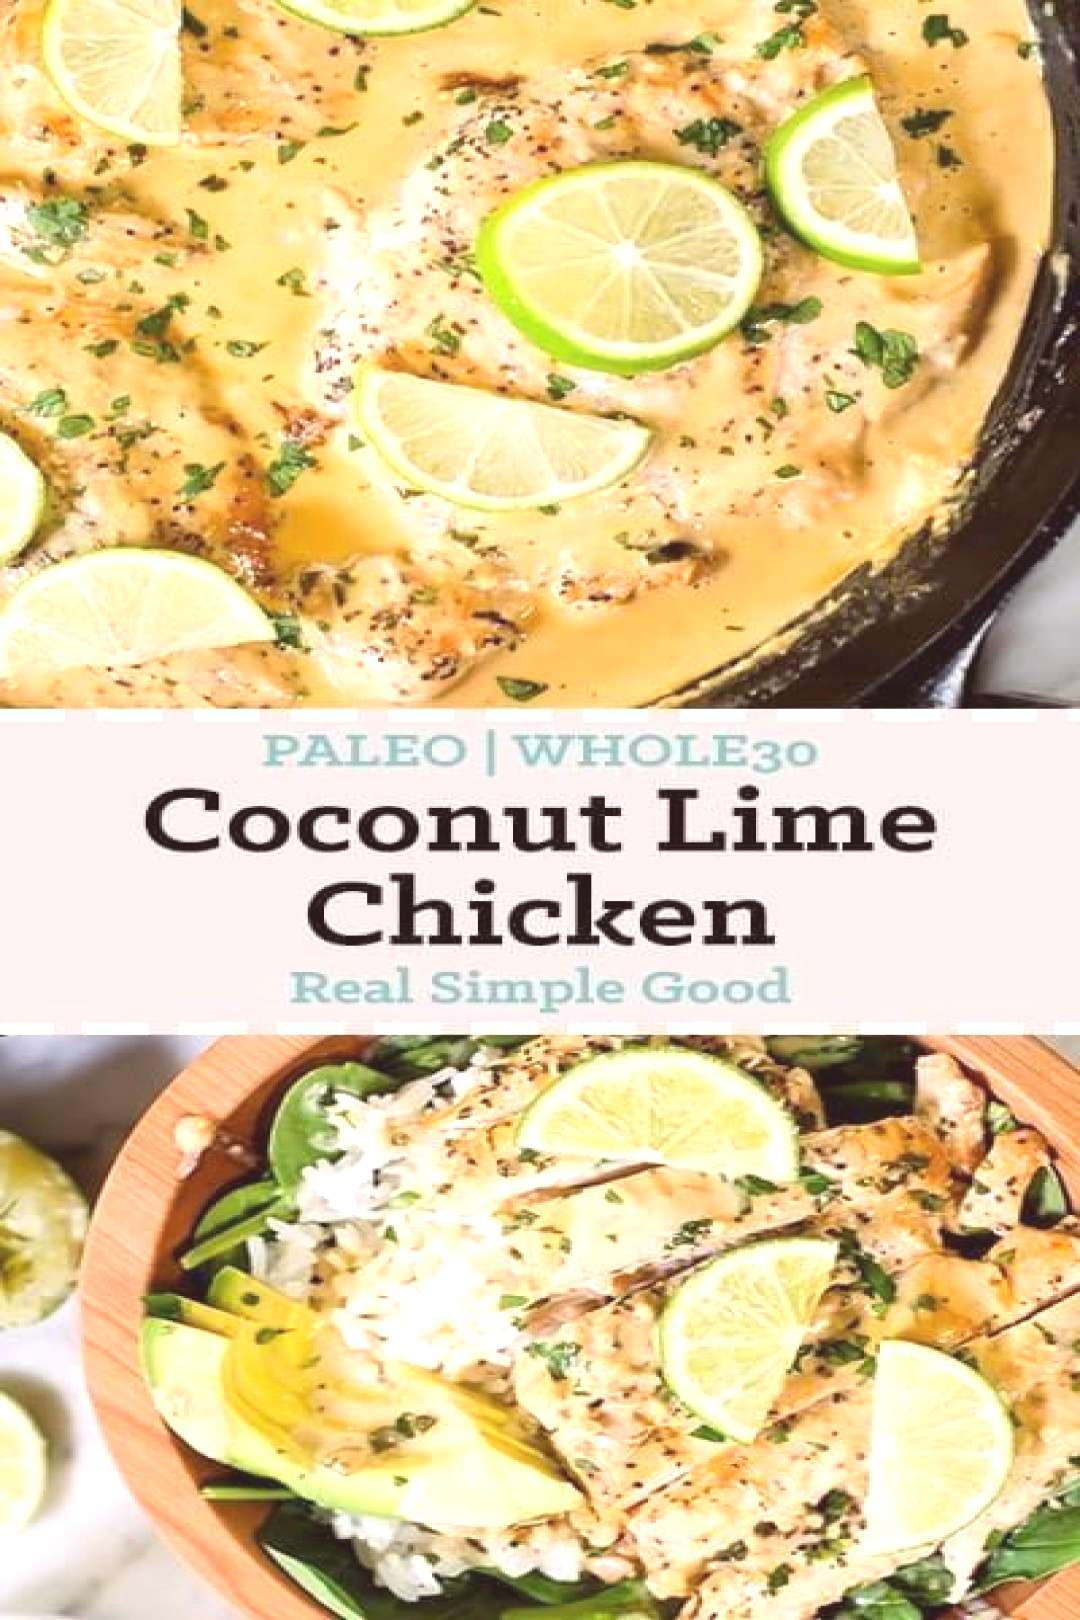 this COCONUT LIME CHICKEN is so yumm!! You must see the complete recipes.